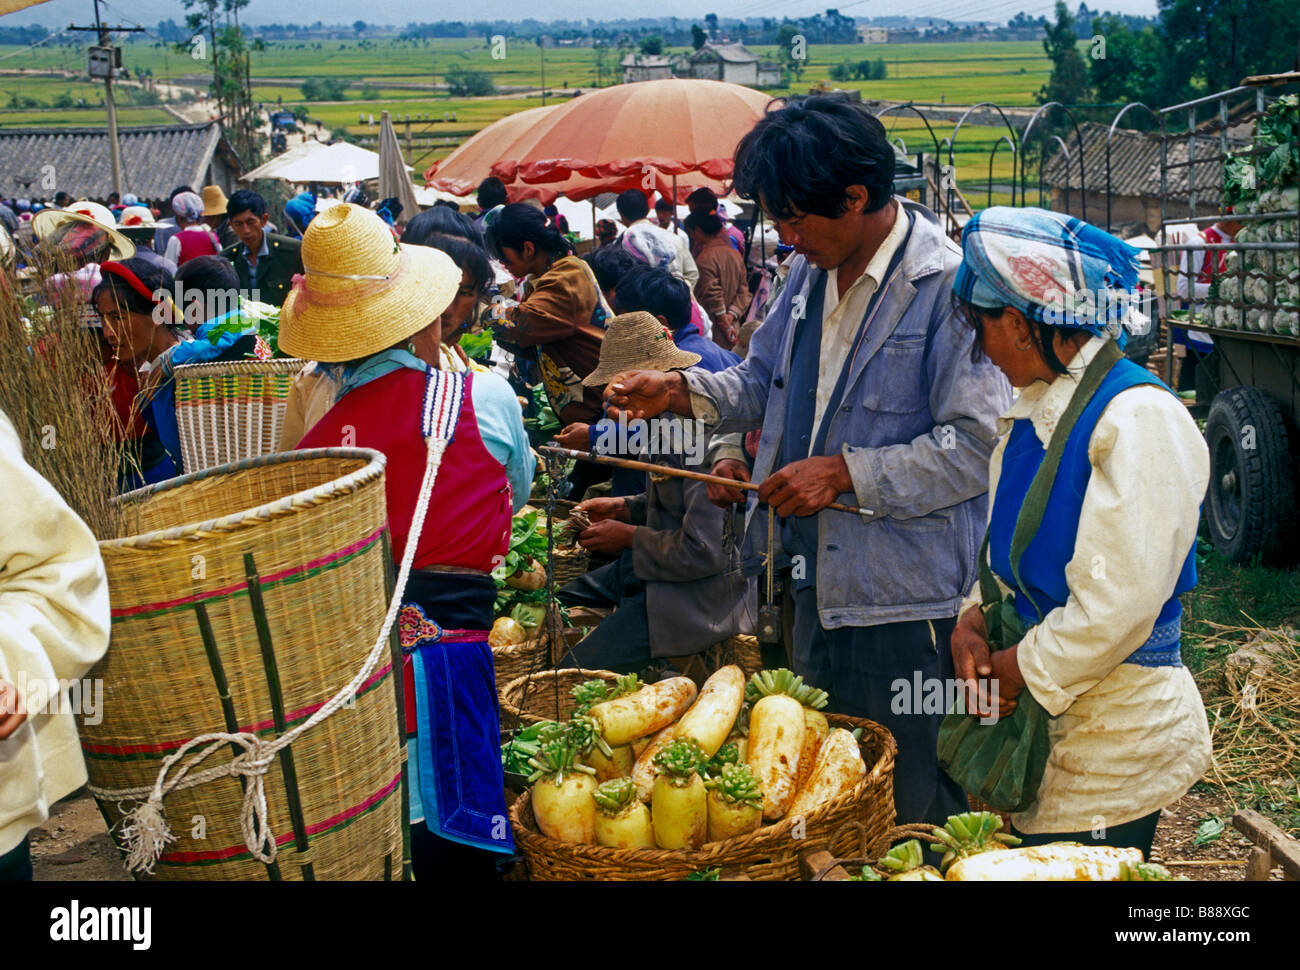 Chinese people, Bai people, Bai ethnicity, ethnic minority, vendor, vendors, shoppers, shopping, Monday Market, Stock Photo